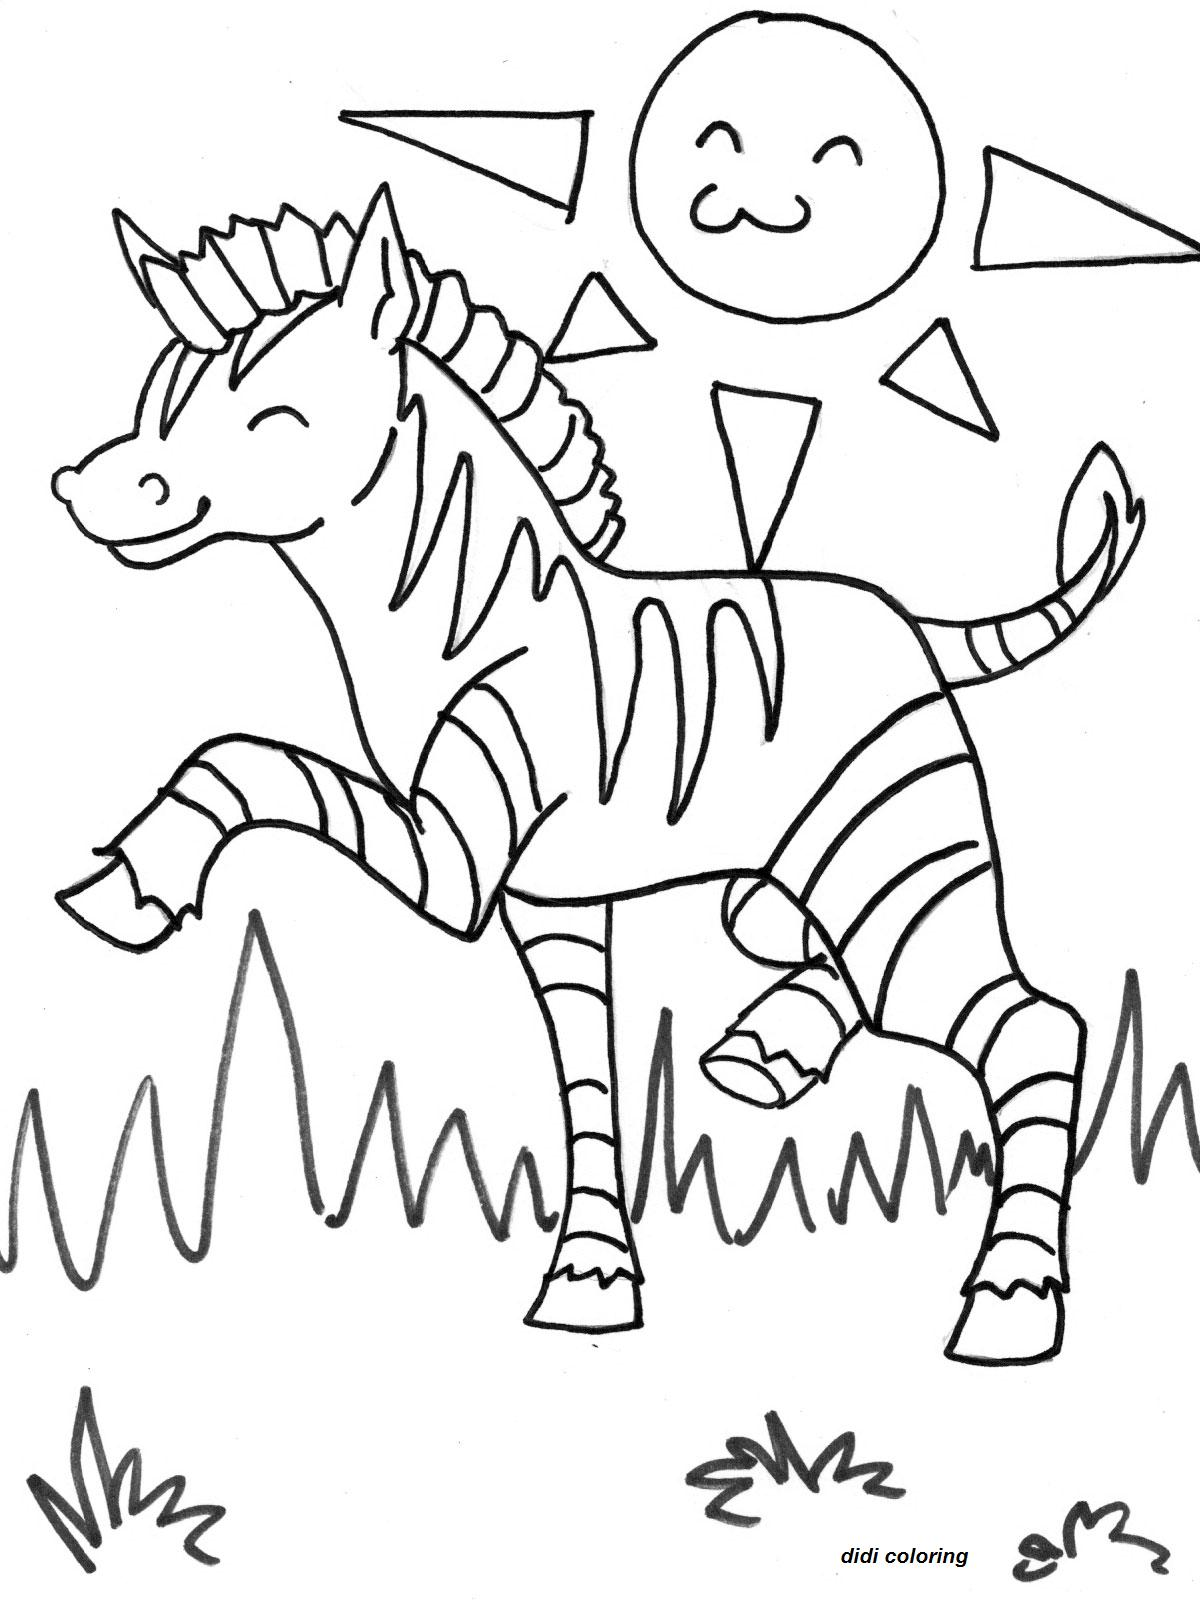 printable exited zebra horse grazing in sunny weather coloring